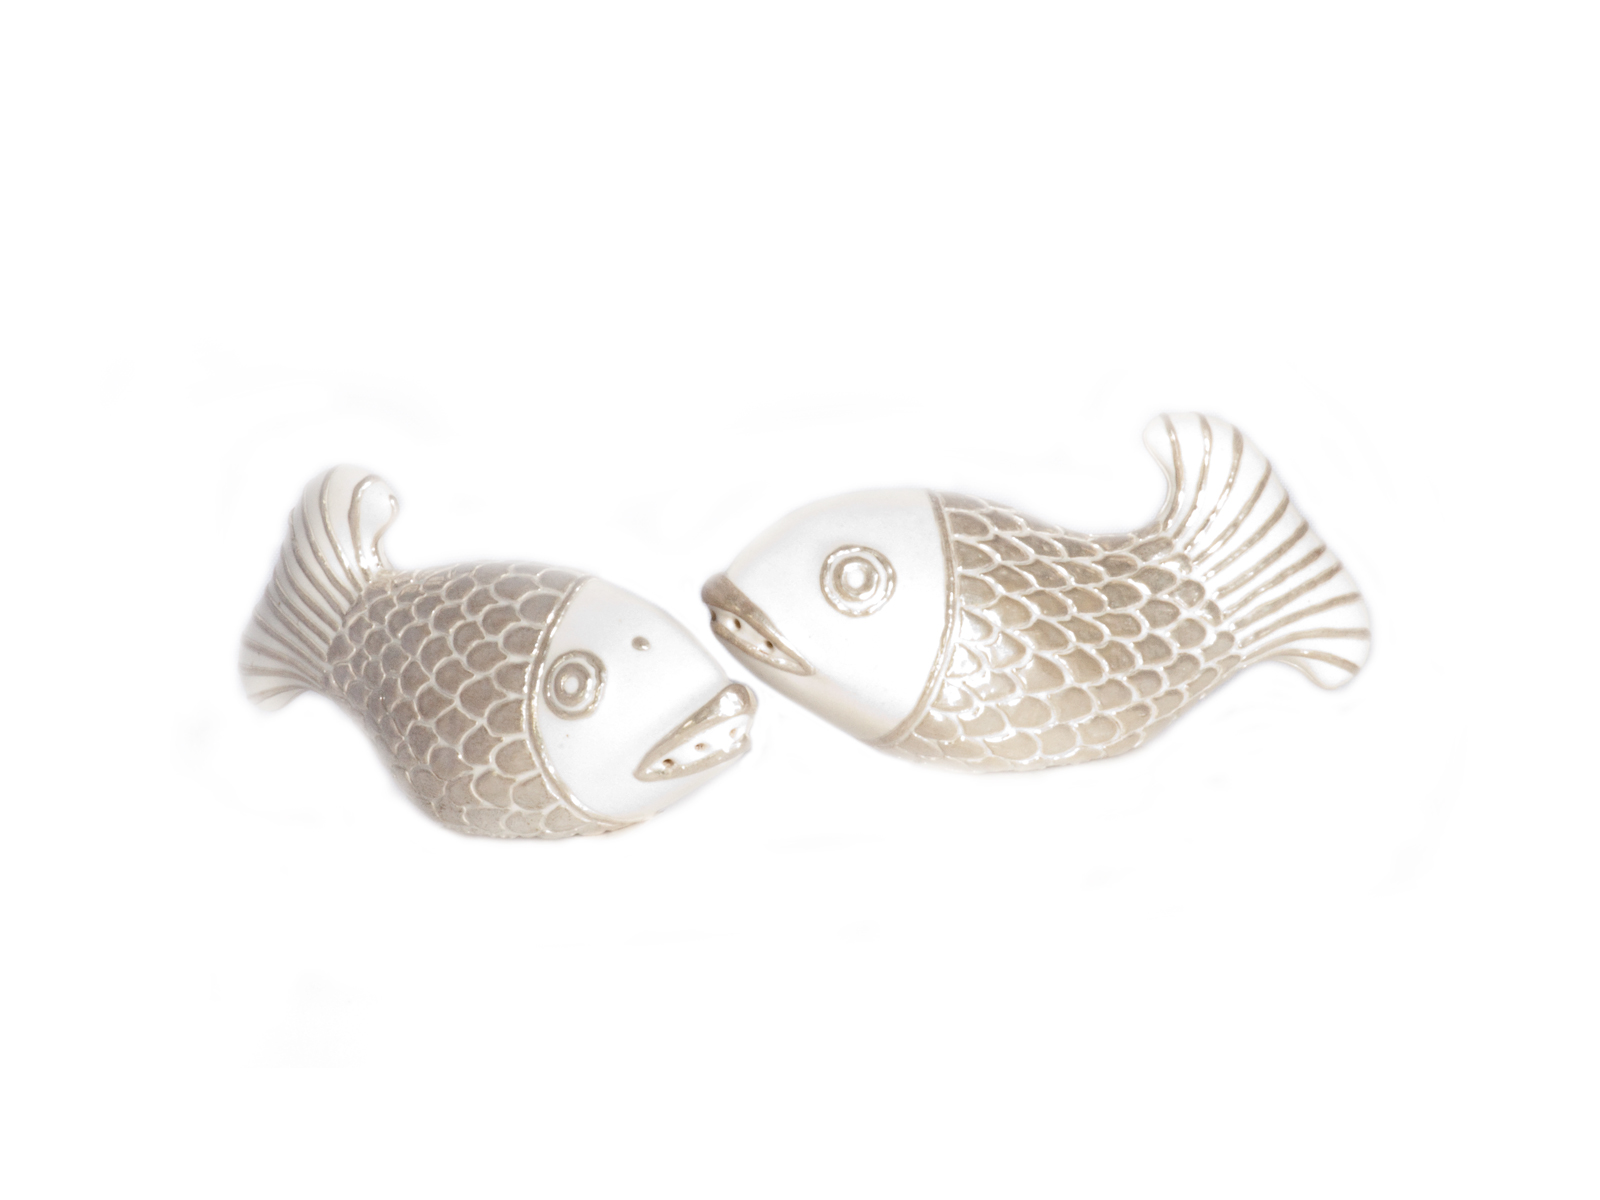 White Fish Salt Pepper Shakers